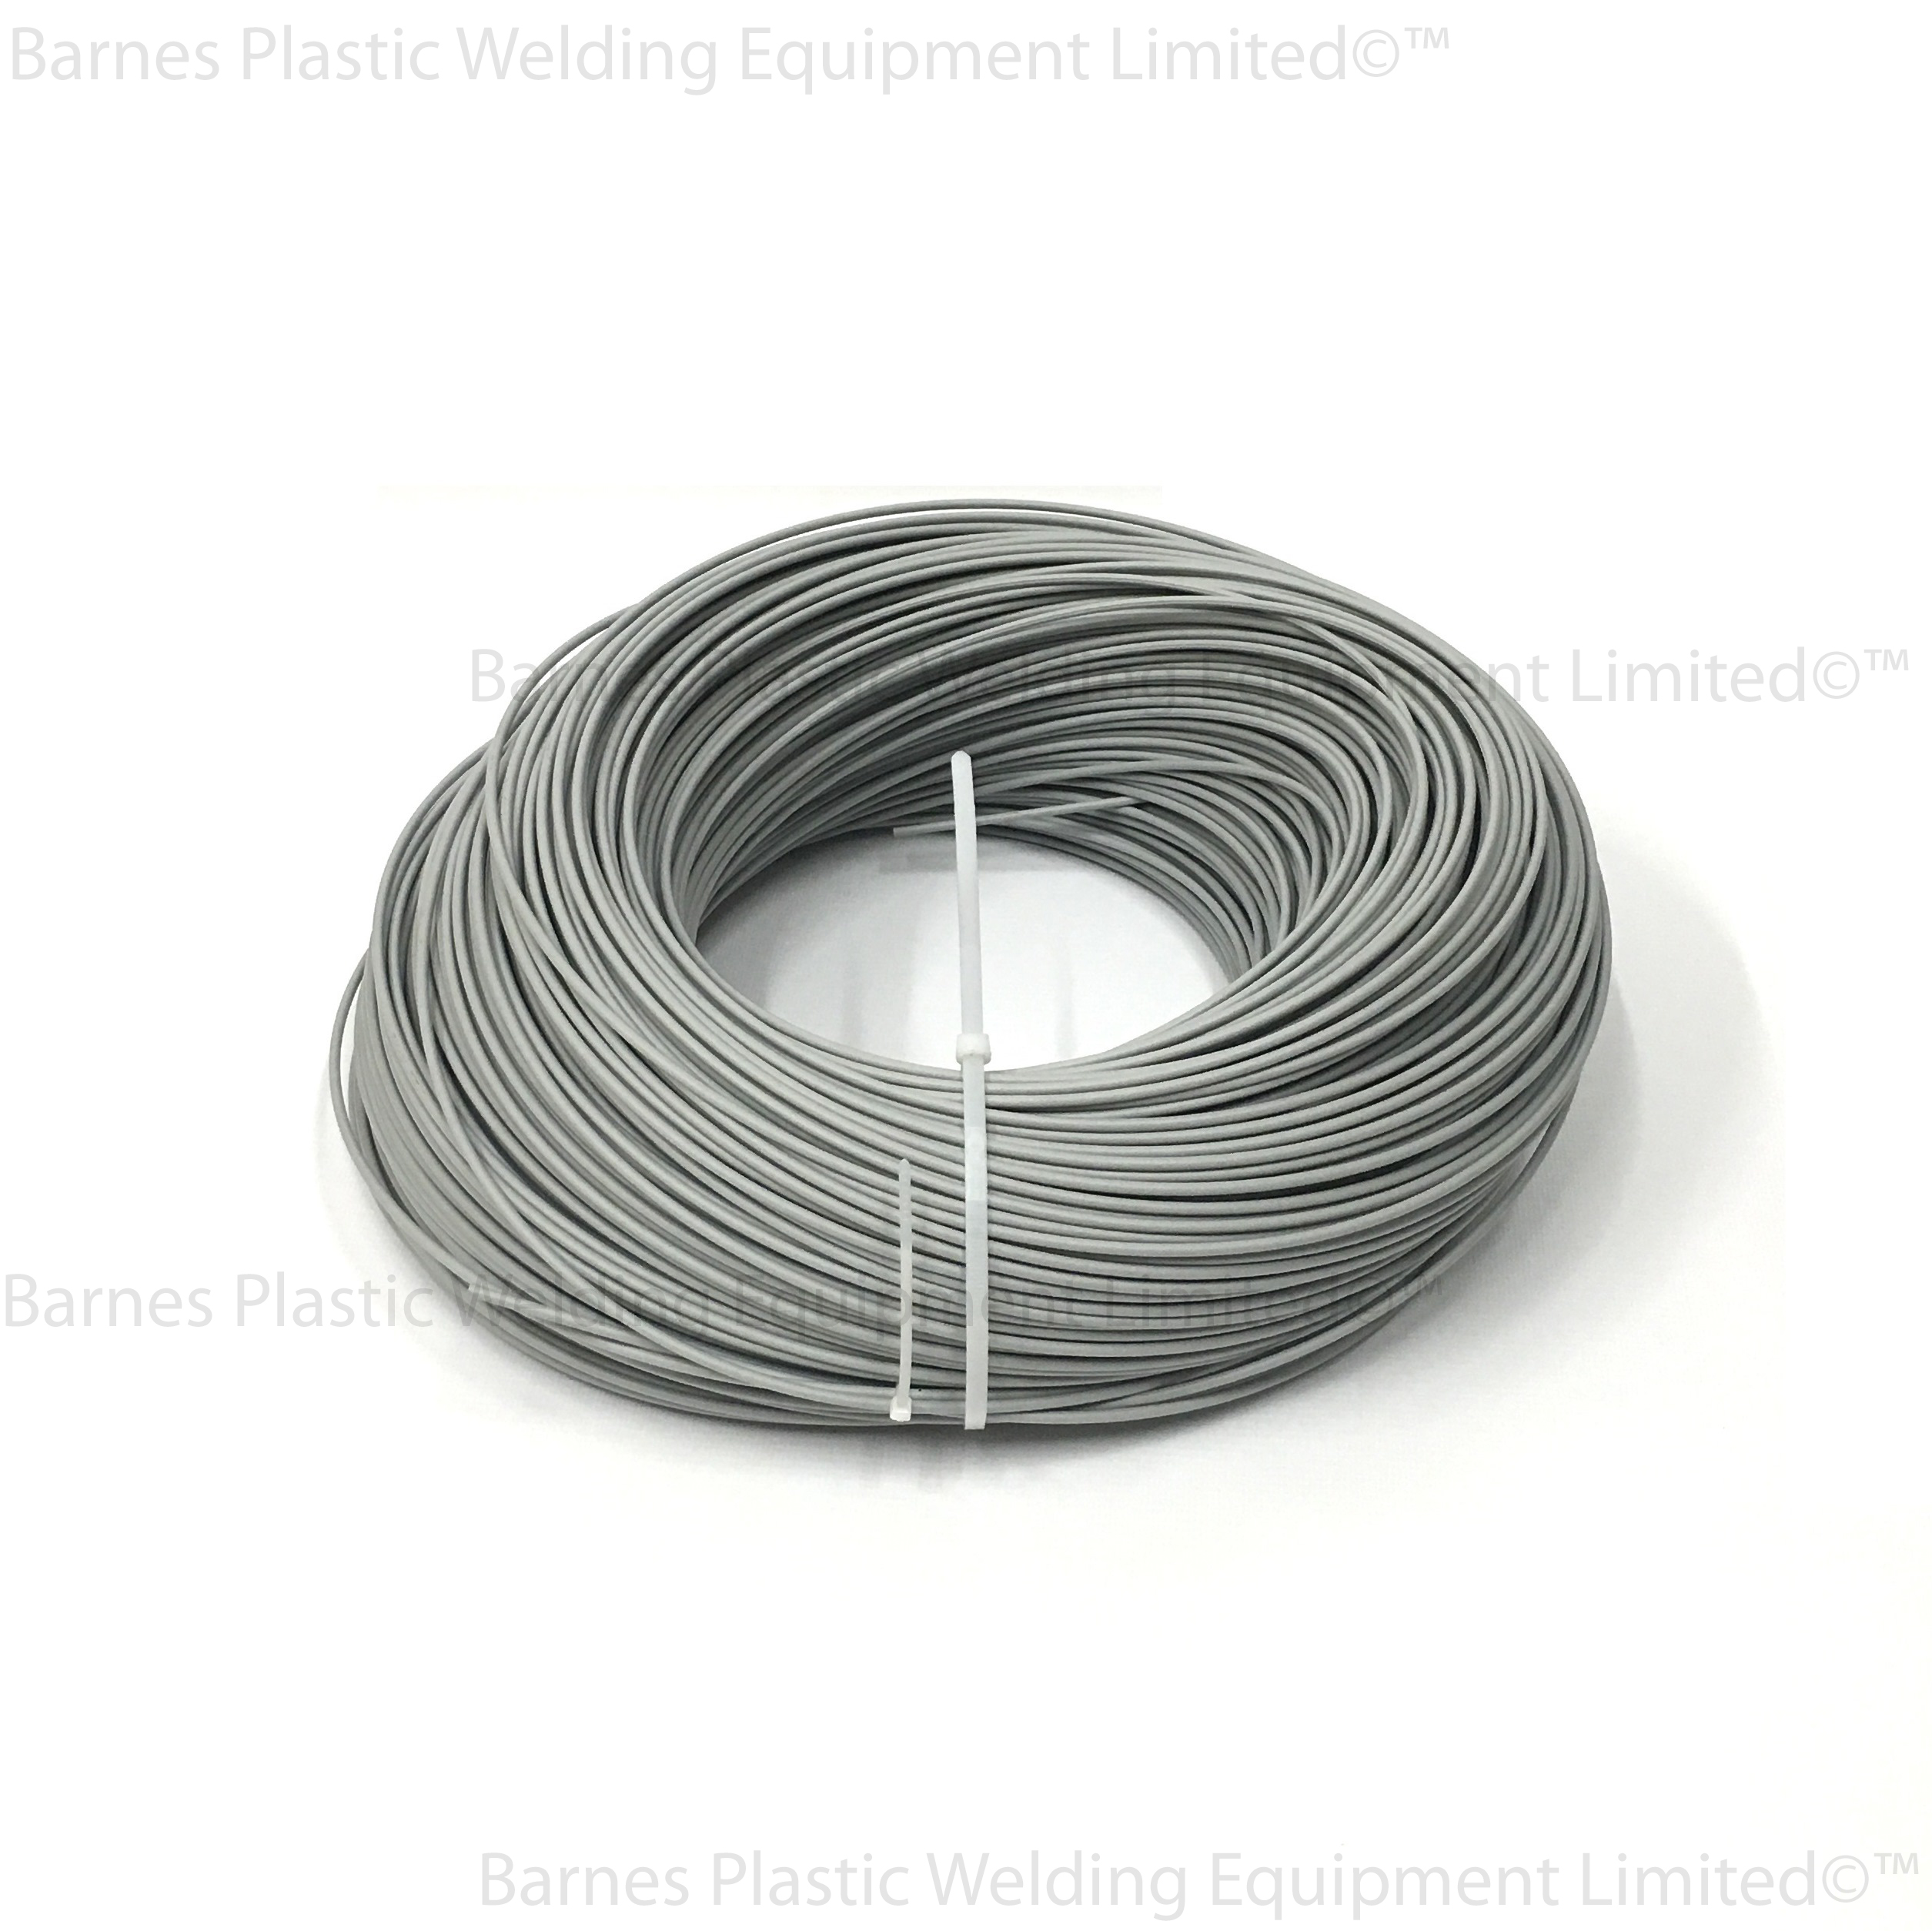 CPVC Plastic Welding Rod 3mm or 4mm